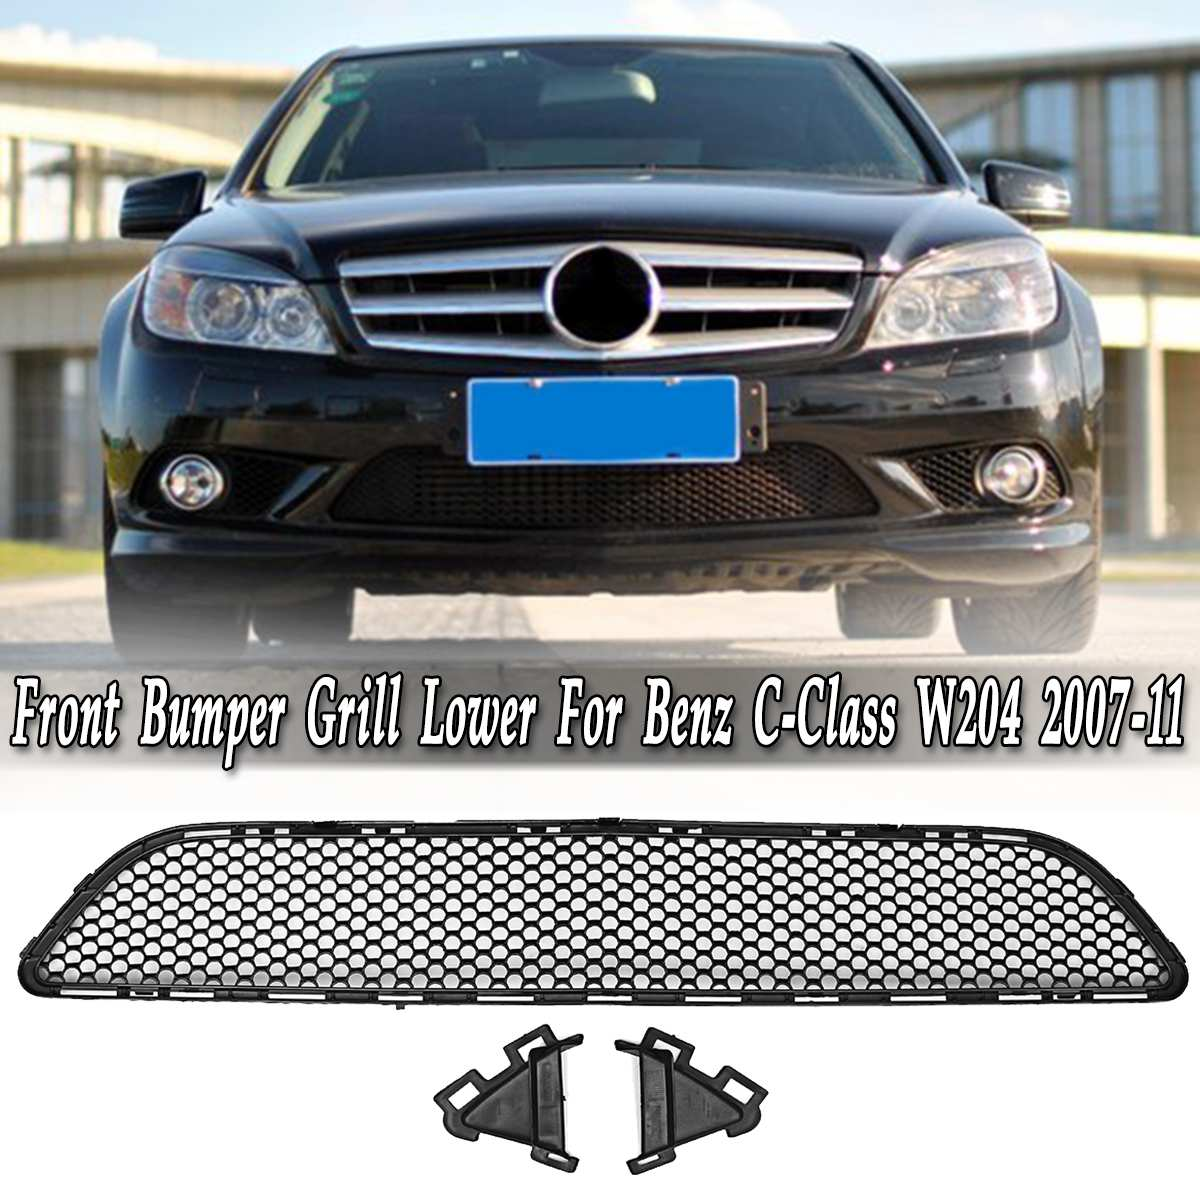 Glossy Black Front Bumper Grille Racing Grills Lower Fit For Mercedes-Benz C-Class For AMG W204 2007 2008 2009 2010 2011Glossy Black Front Bumper Grille Racing Grills Lower Fit For Mercedes-Benz C-Class For AMG W204 2007 2008 2009 2010 2011